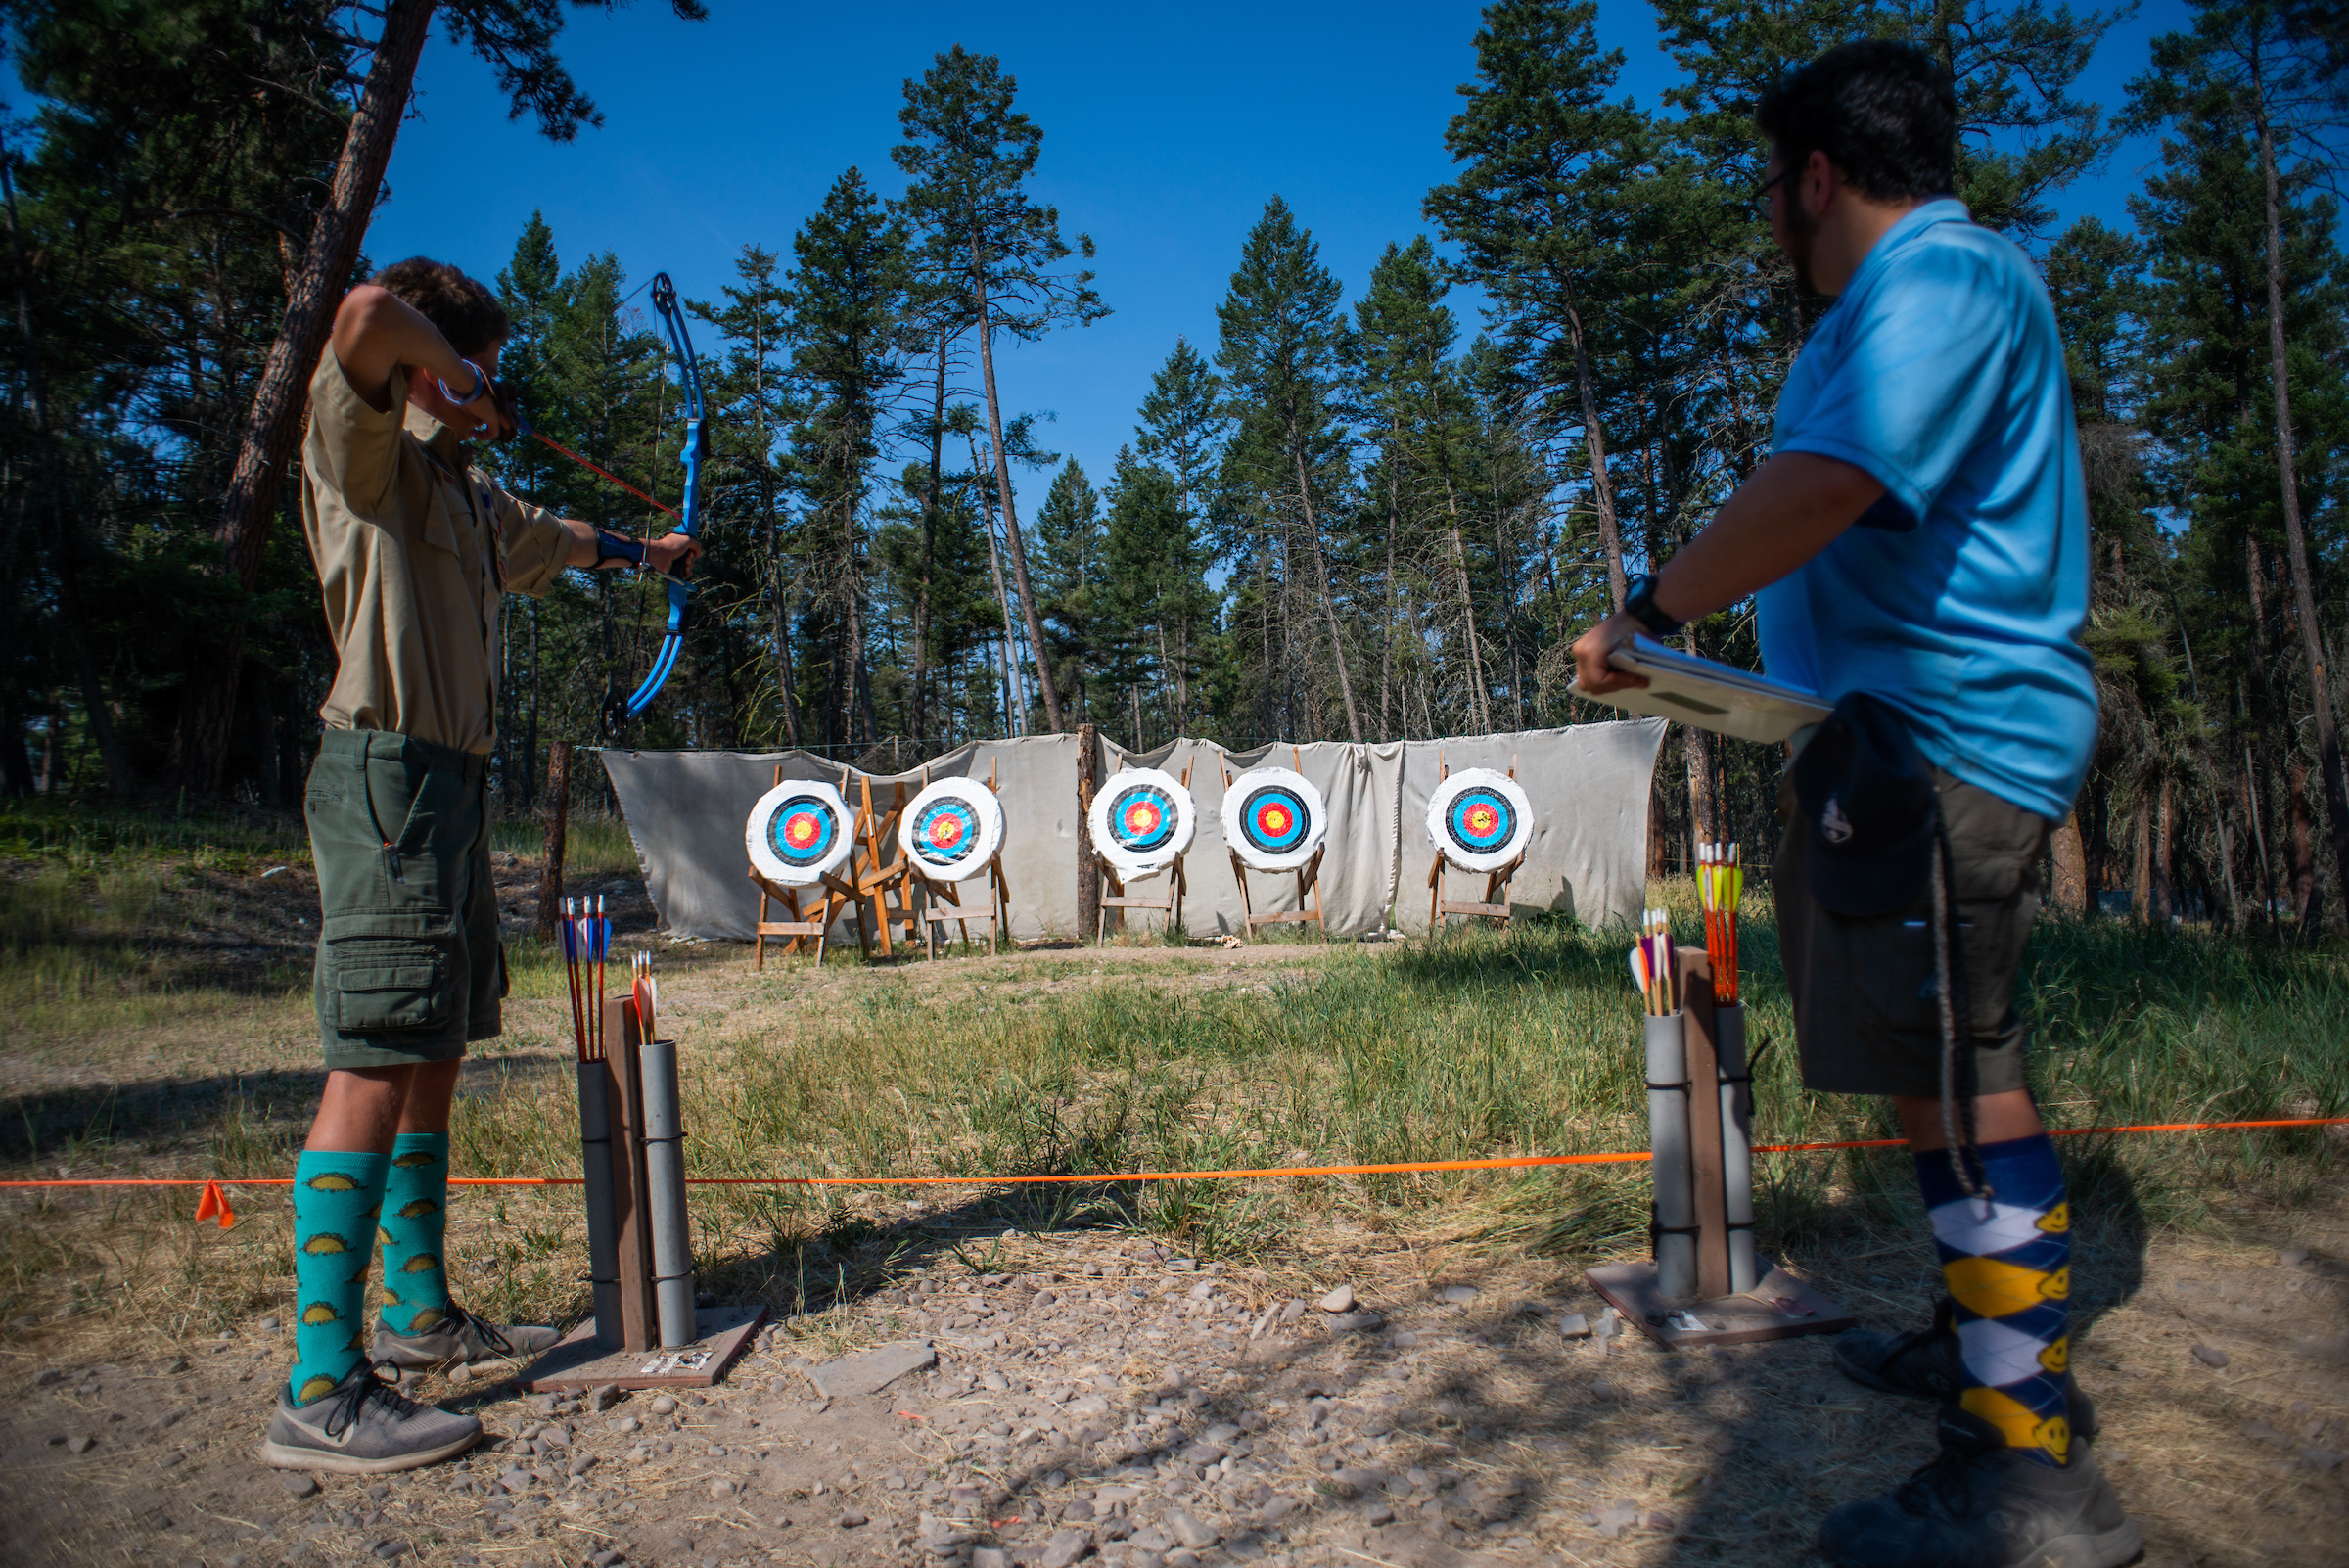 Camp counselor teaches Boy Scout archery at summer camp